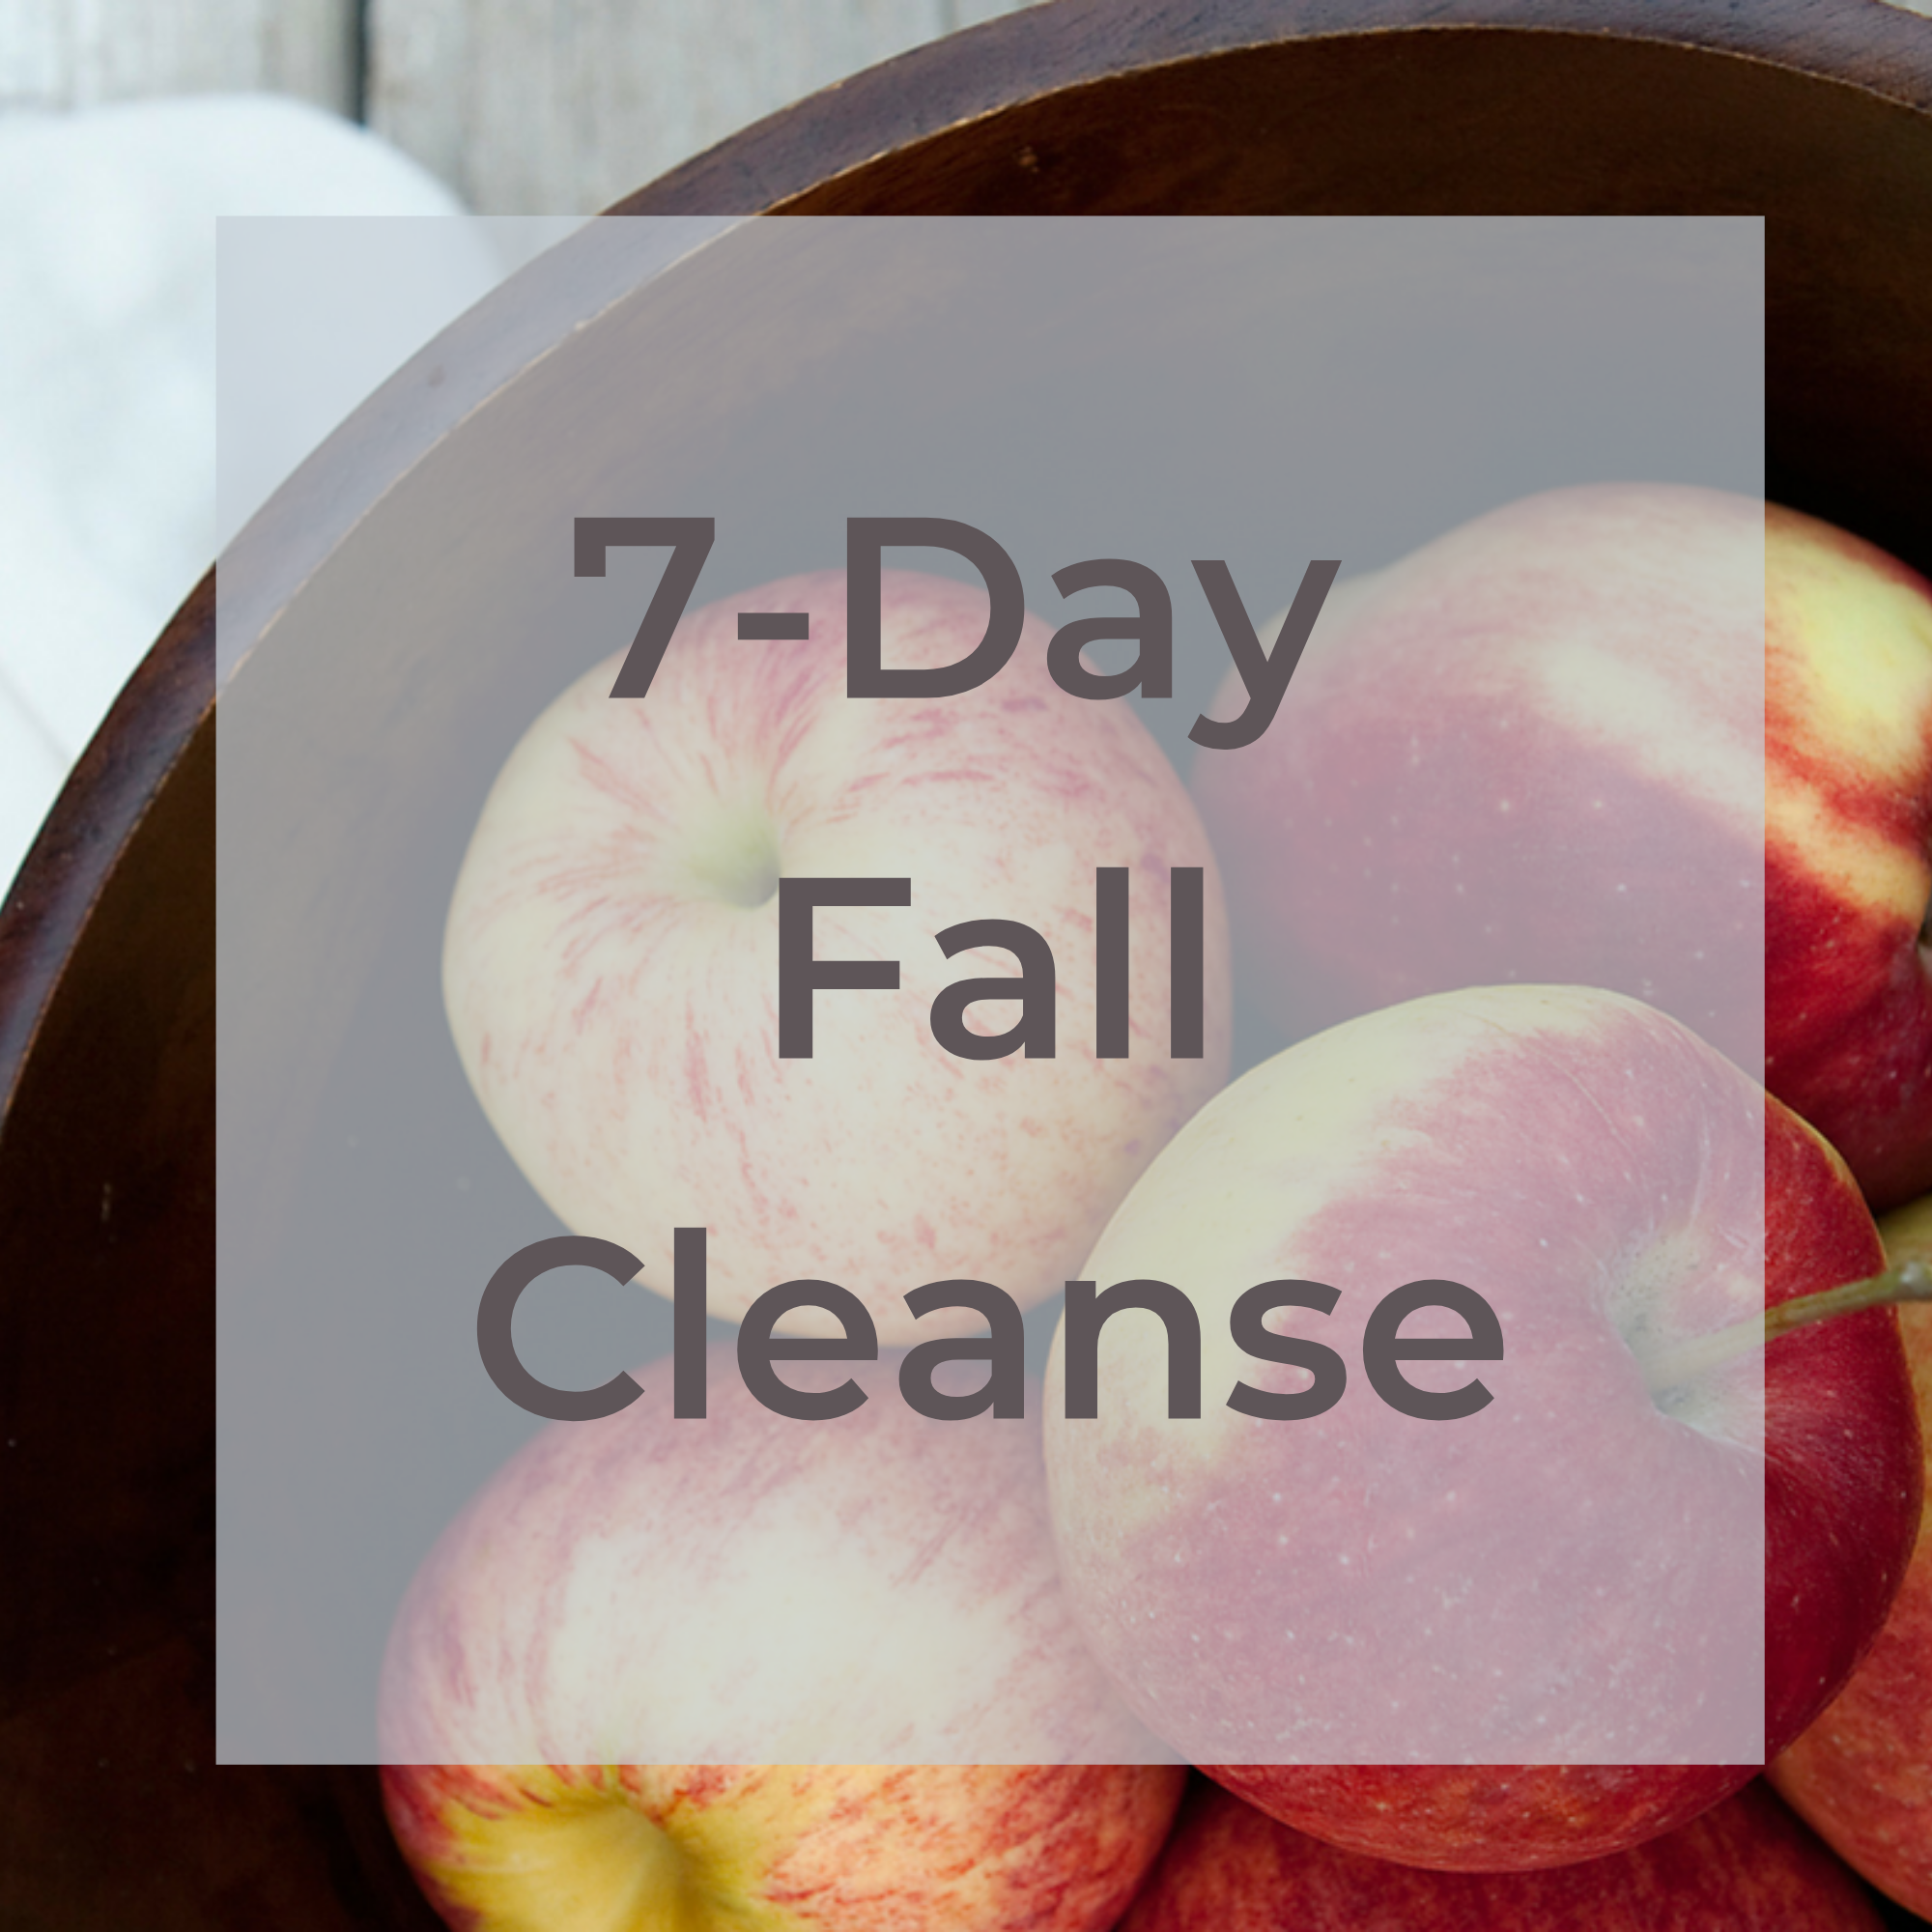 7-Day Fall Cleanse